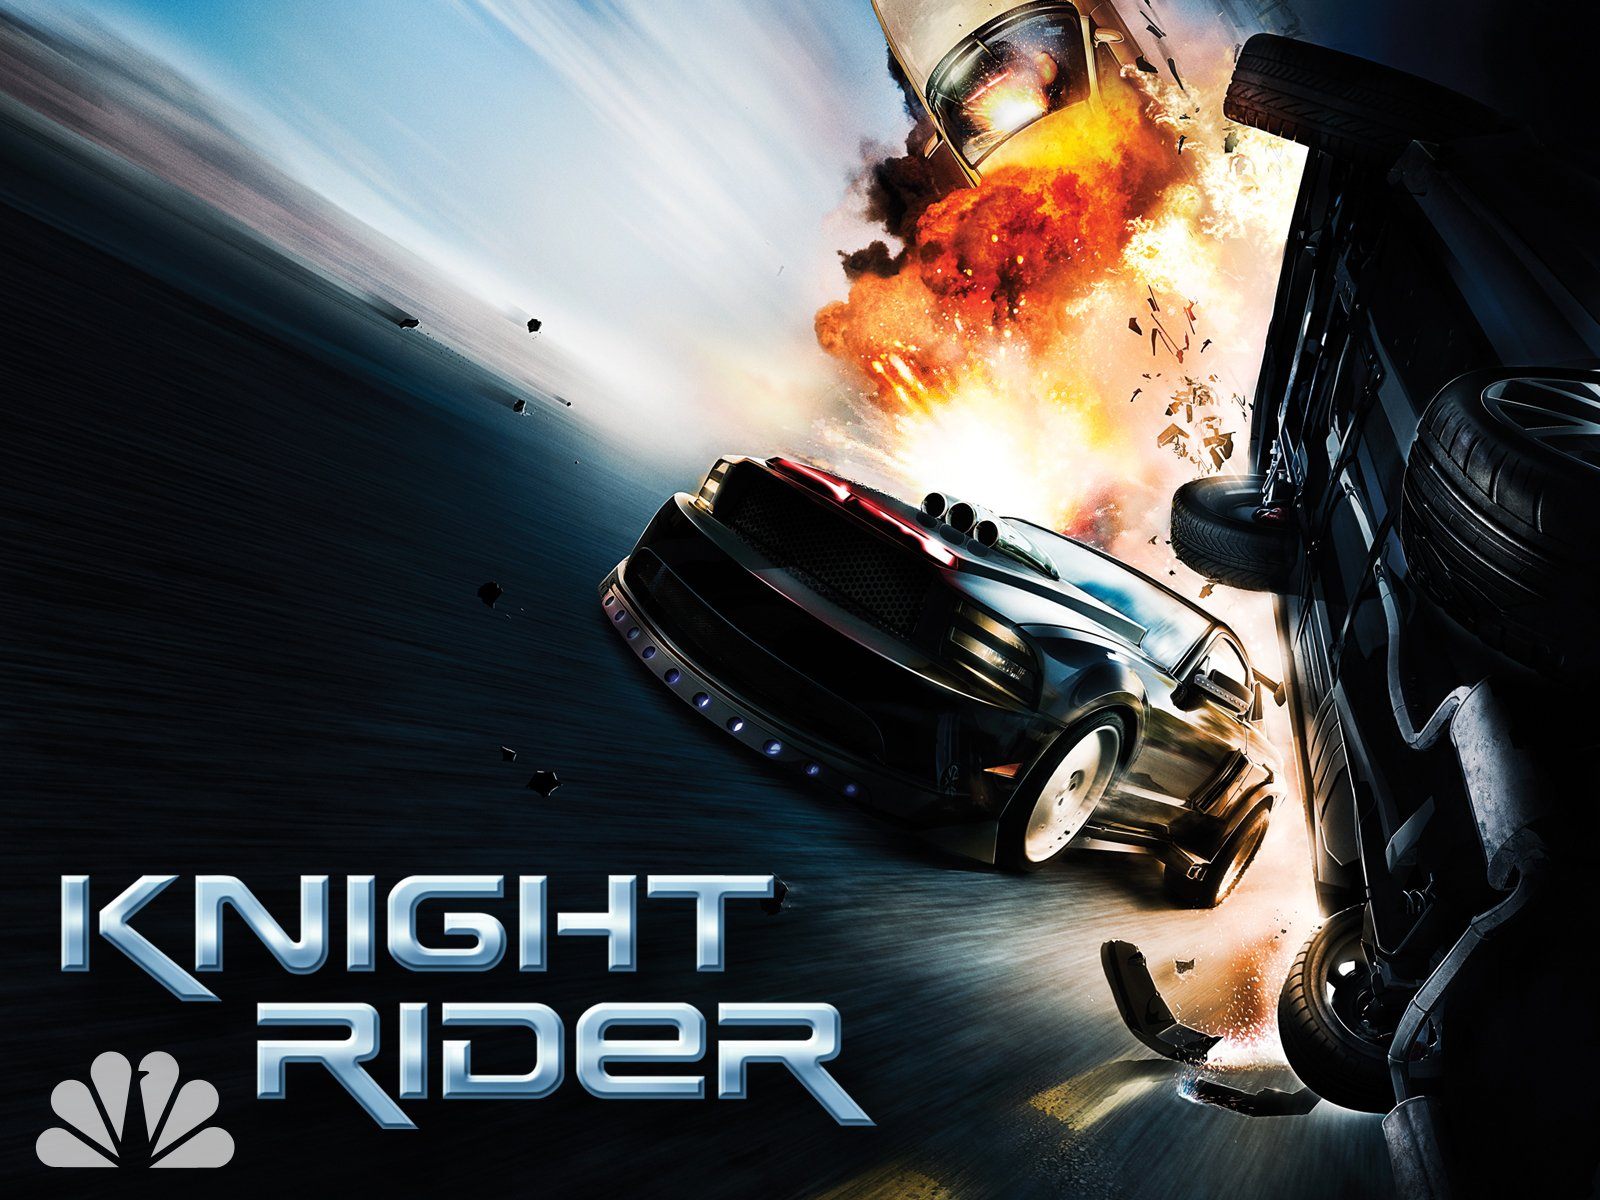 knight rider 2008 movie download free